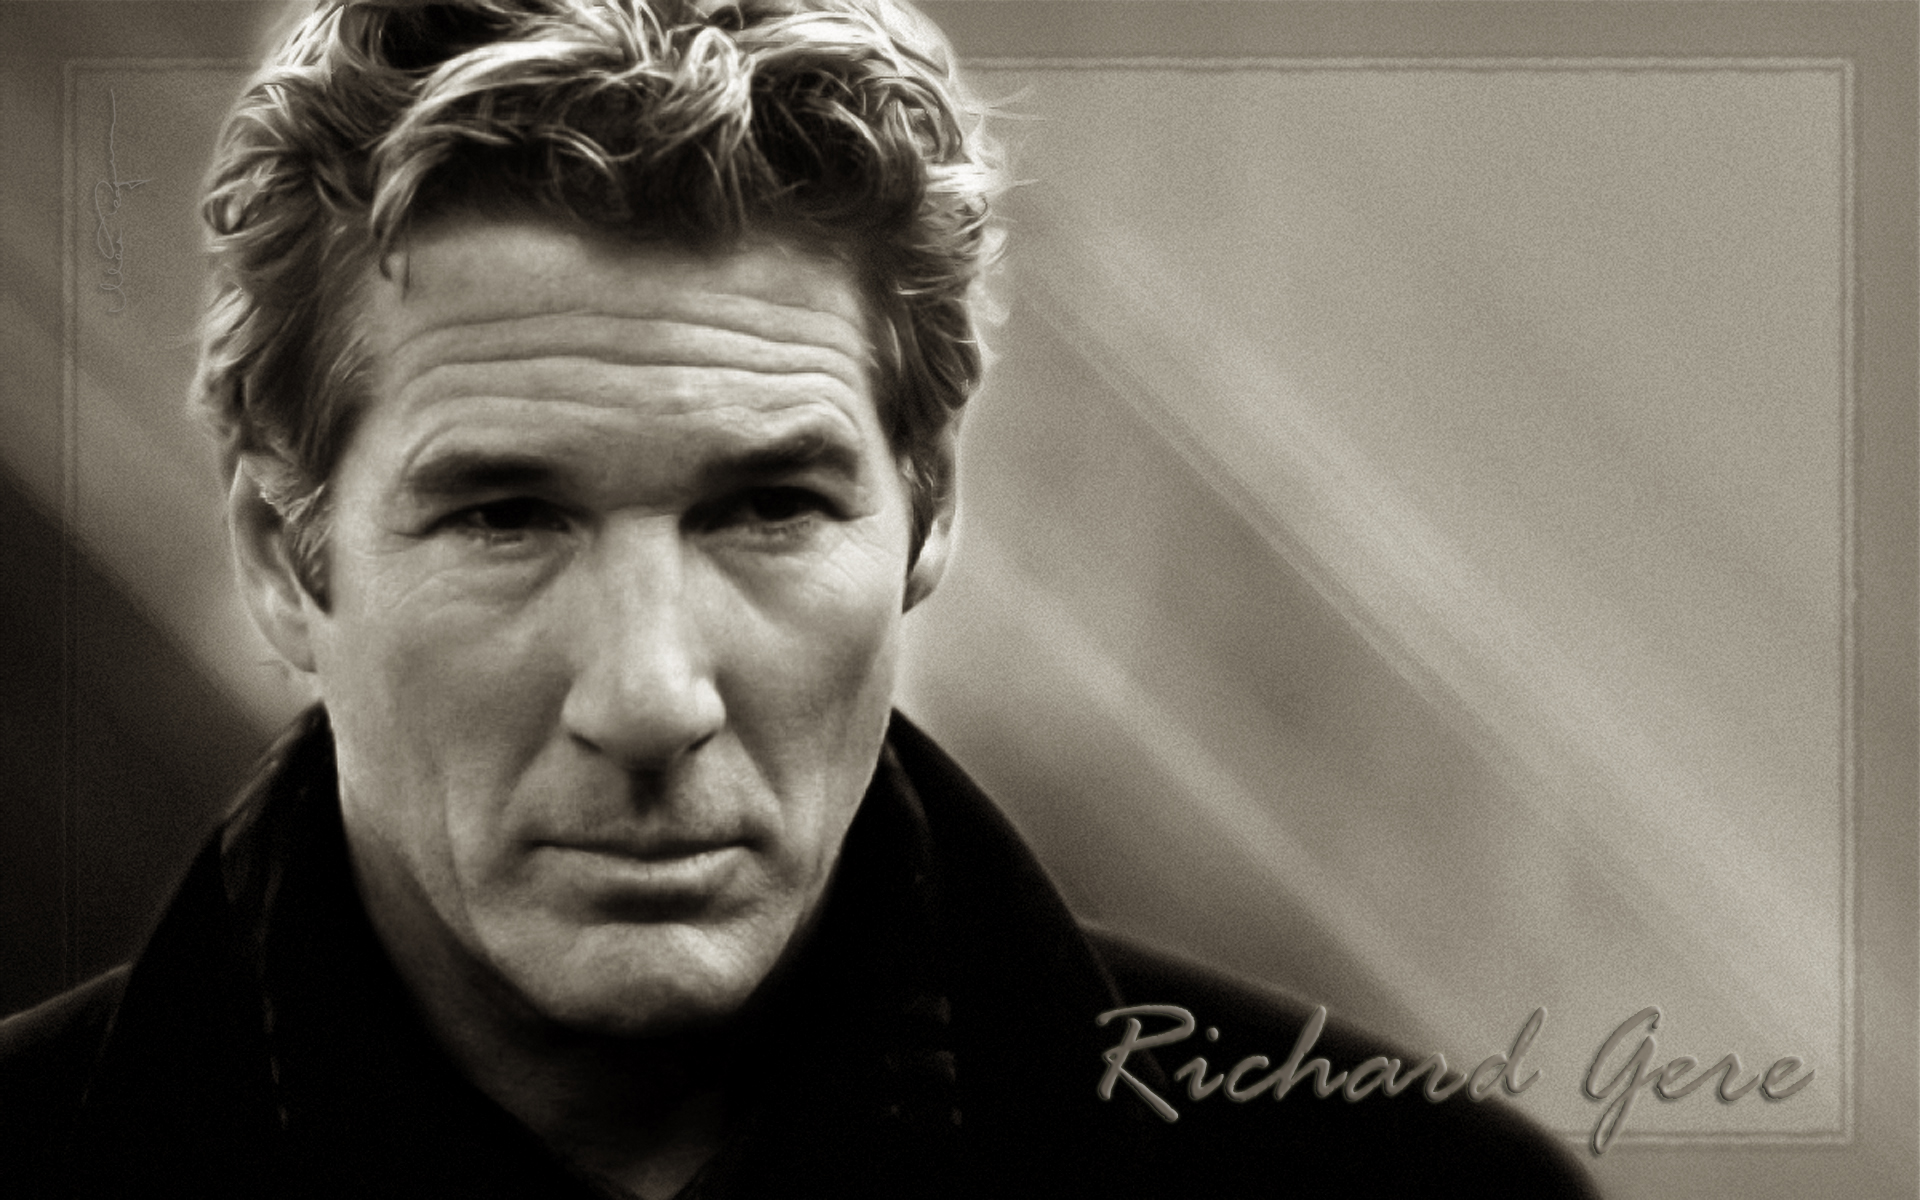 Pictures of Richard Gere   Pictures Of Celebrities 1920x1200